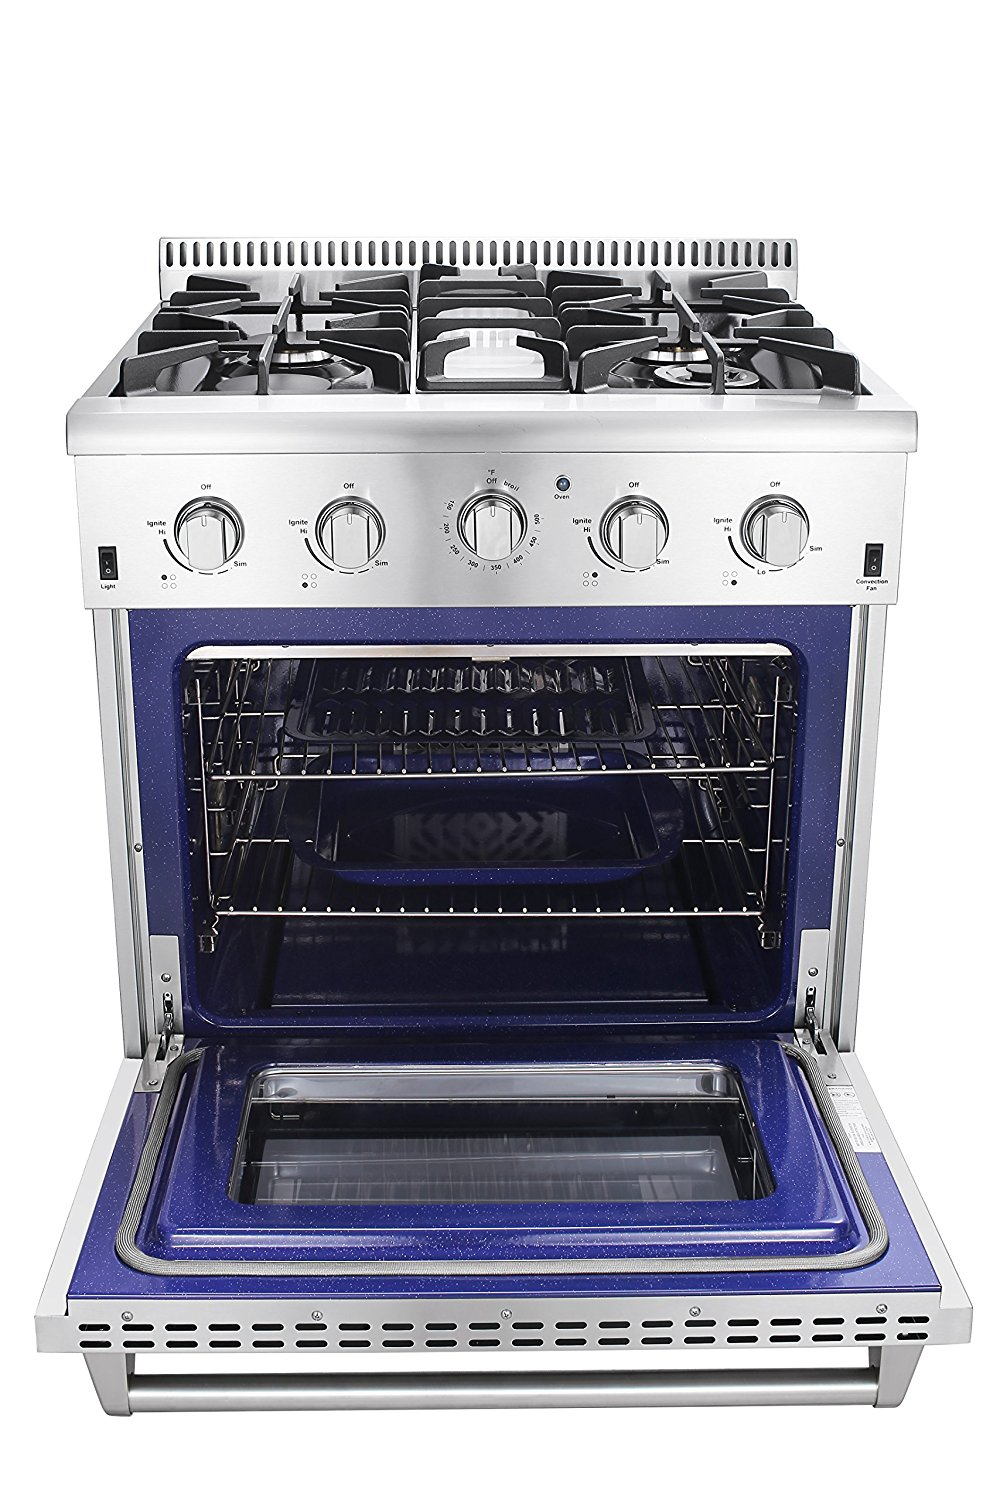 kitchen stove gas 30 in 4 2 cu ft stainless steel gas range with convection 750